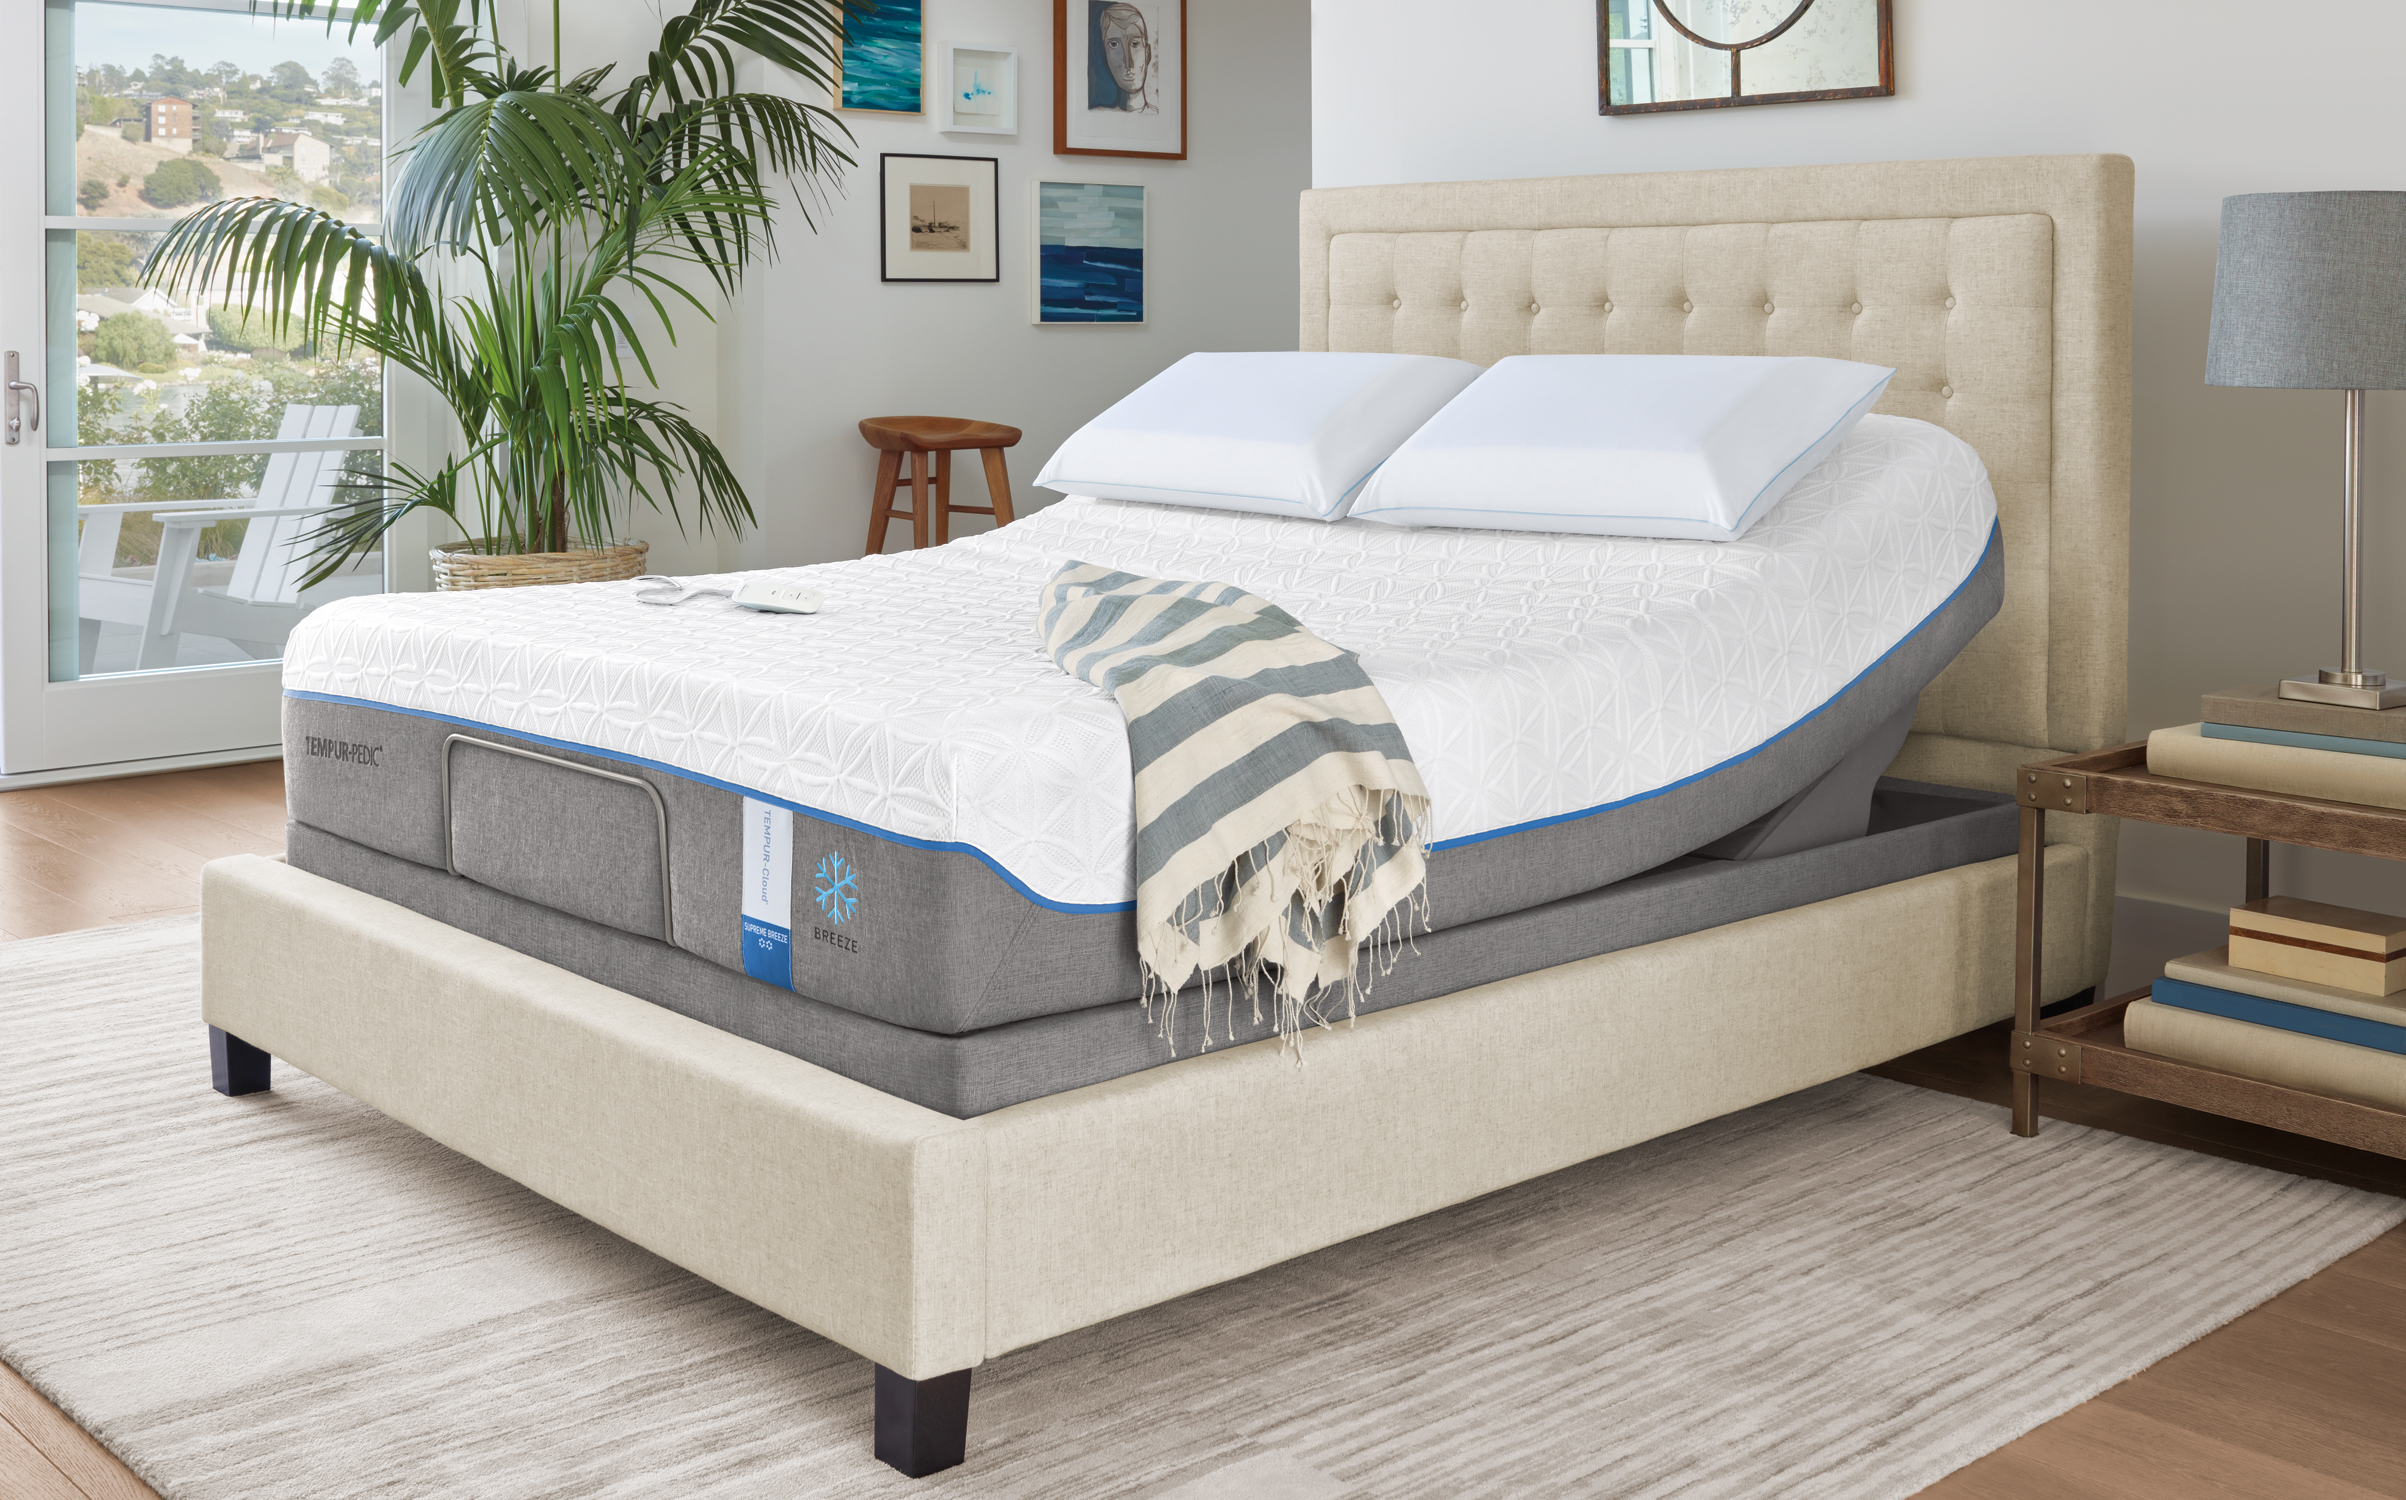 TempurPedic Cloud Supeme Breeze Mattress  Sleepworks NY